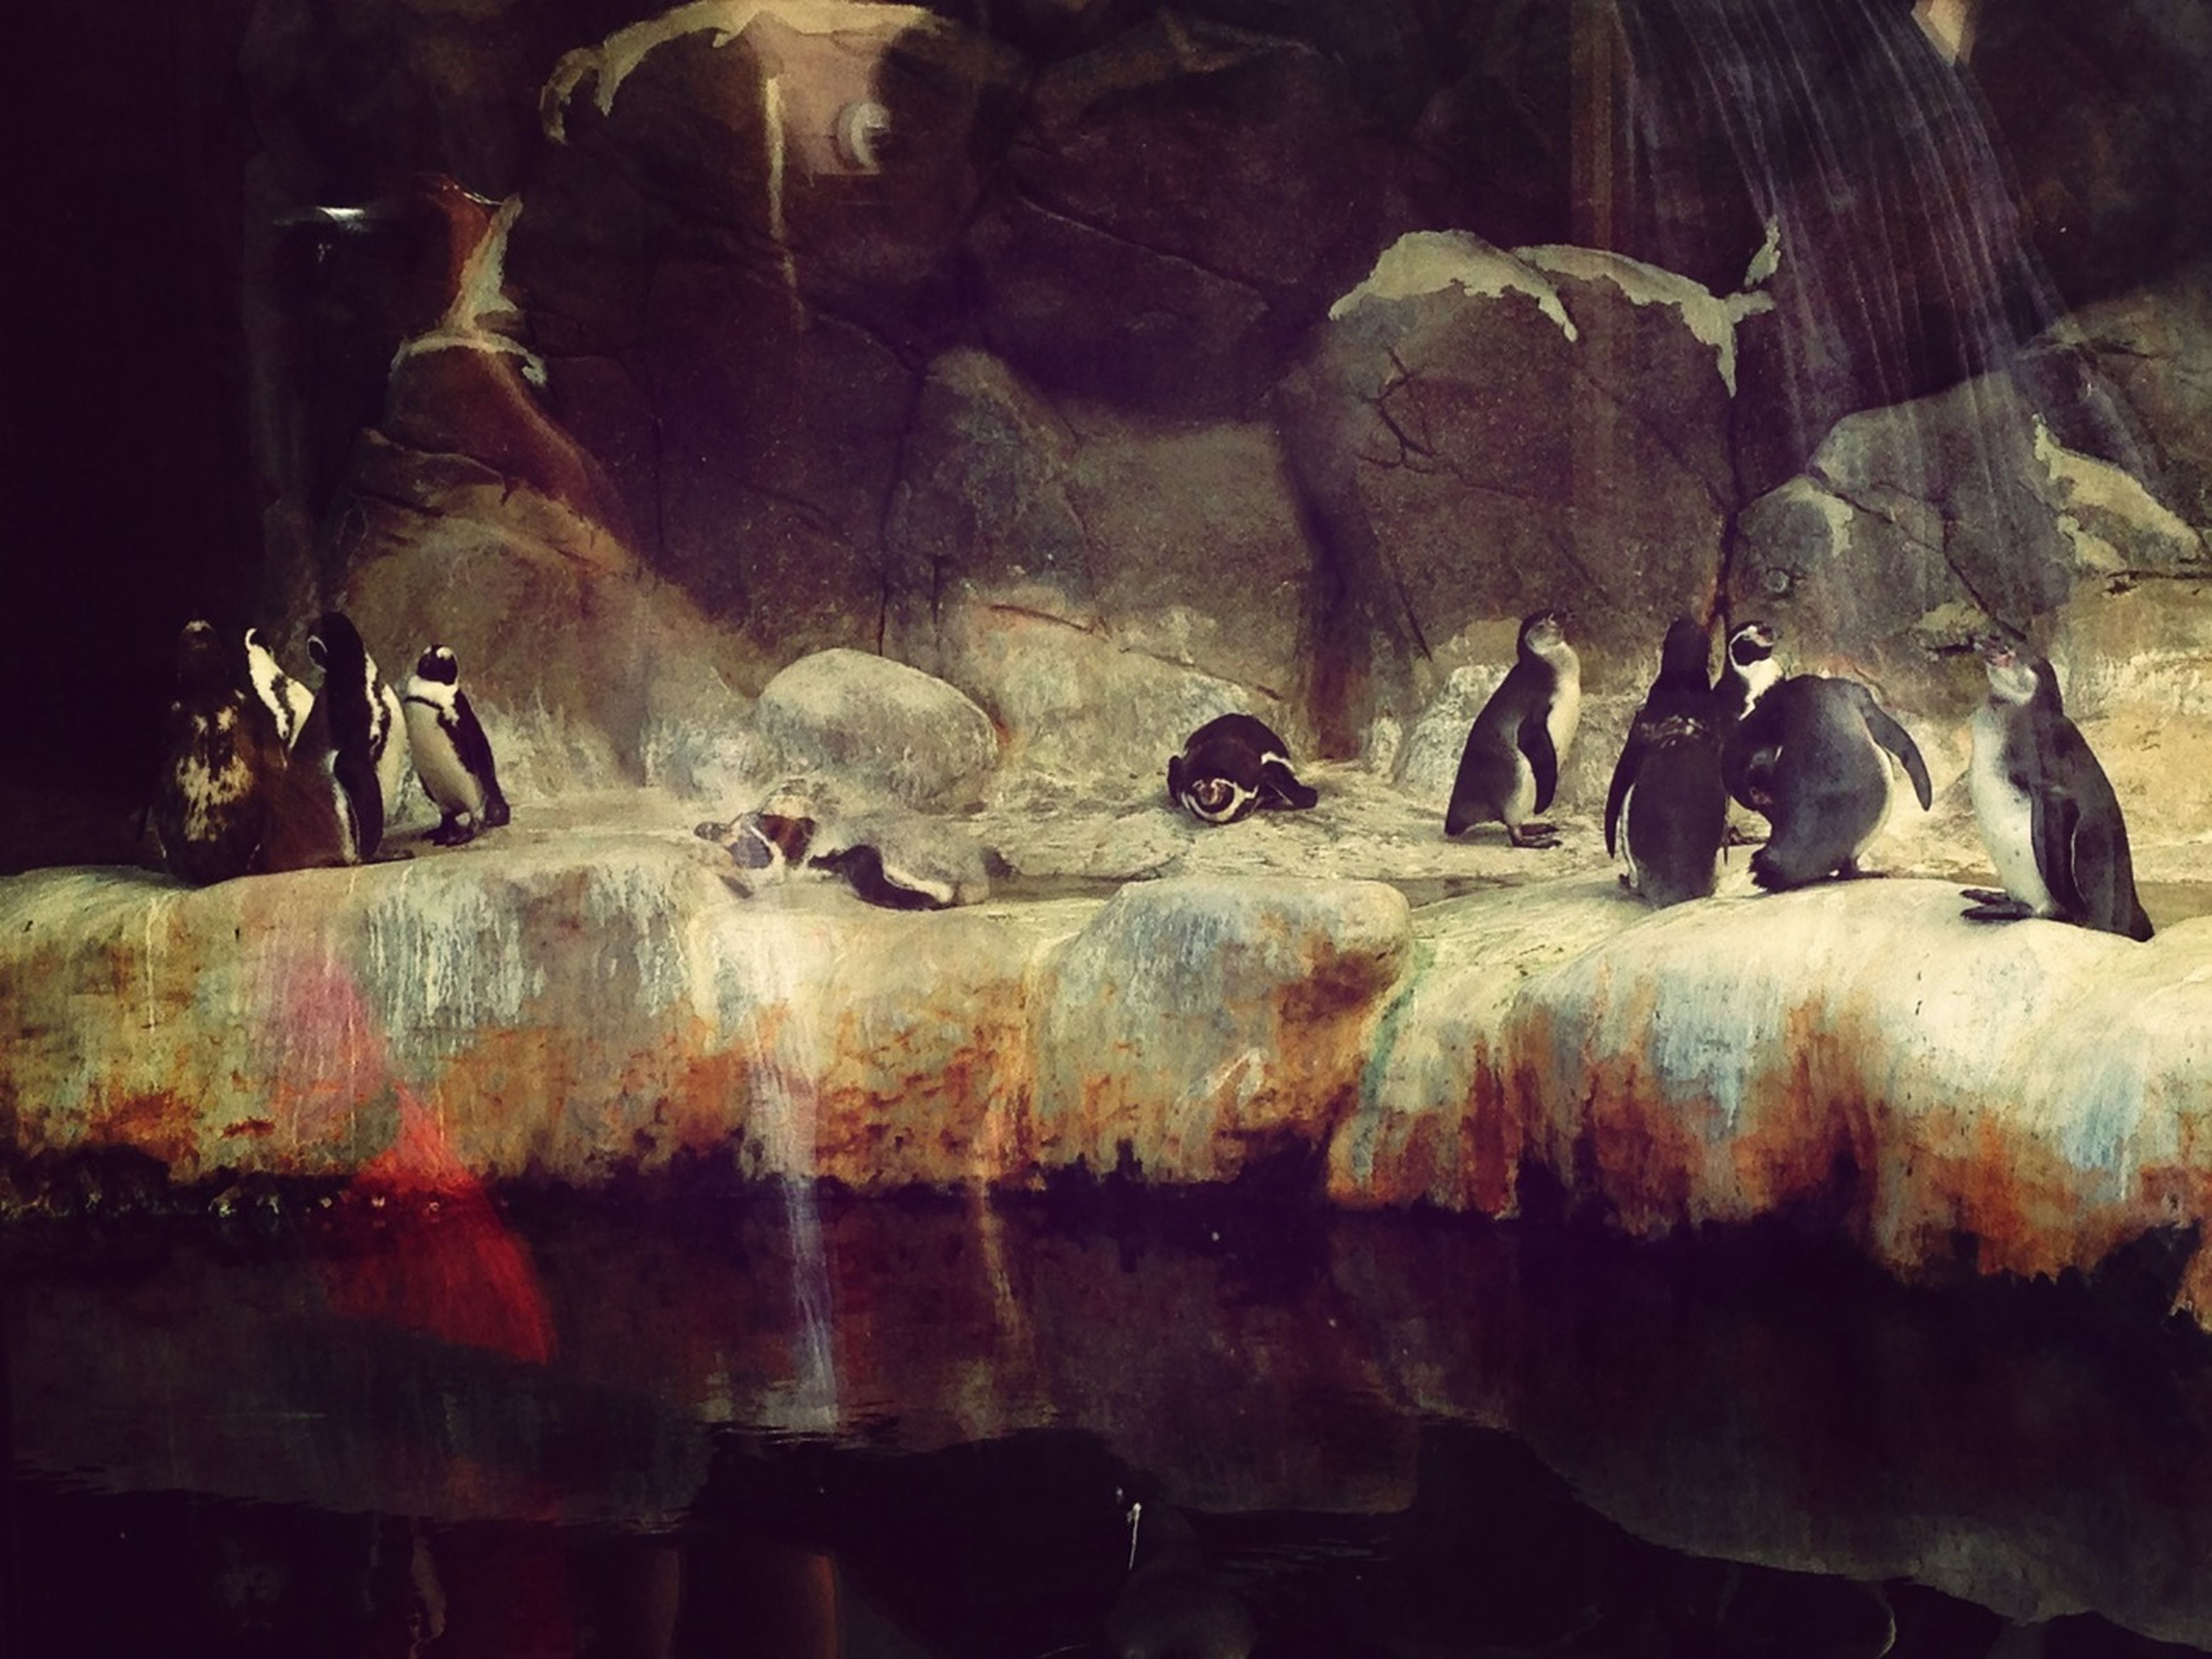 indoors, men, rock - object, day, medium group of people, cave, rock formation, animal themes, sunlight, large group of people, high angle view, deterioration, shadow, nature, weathered